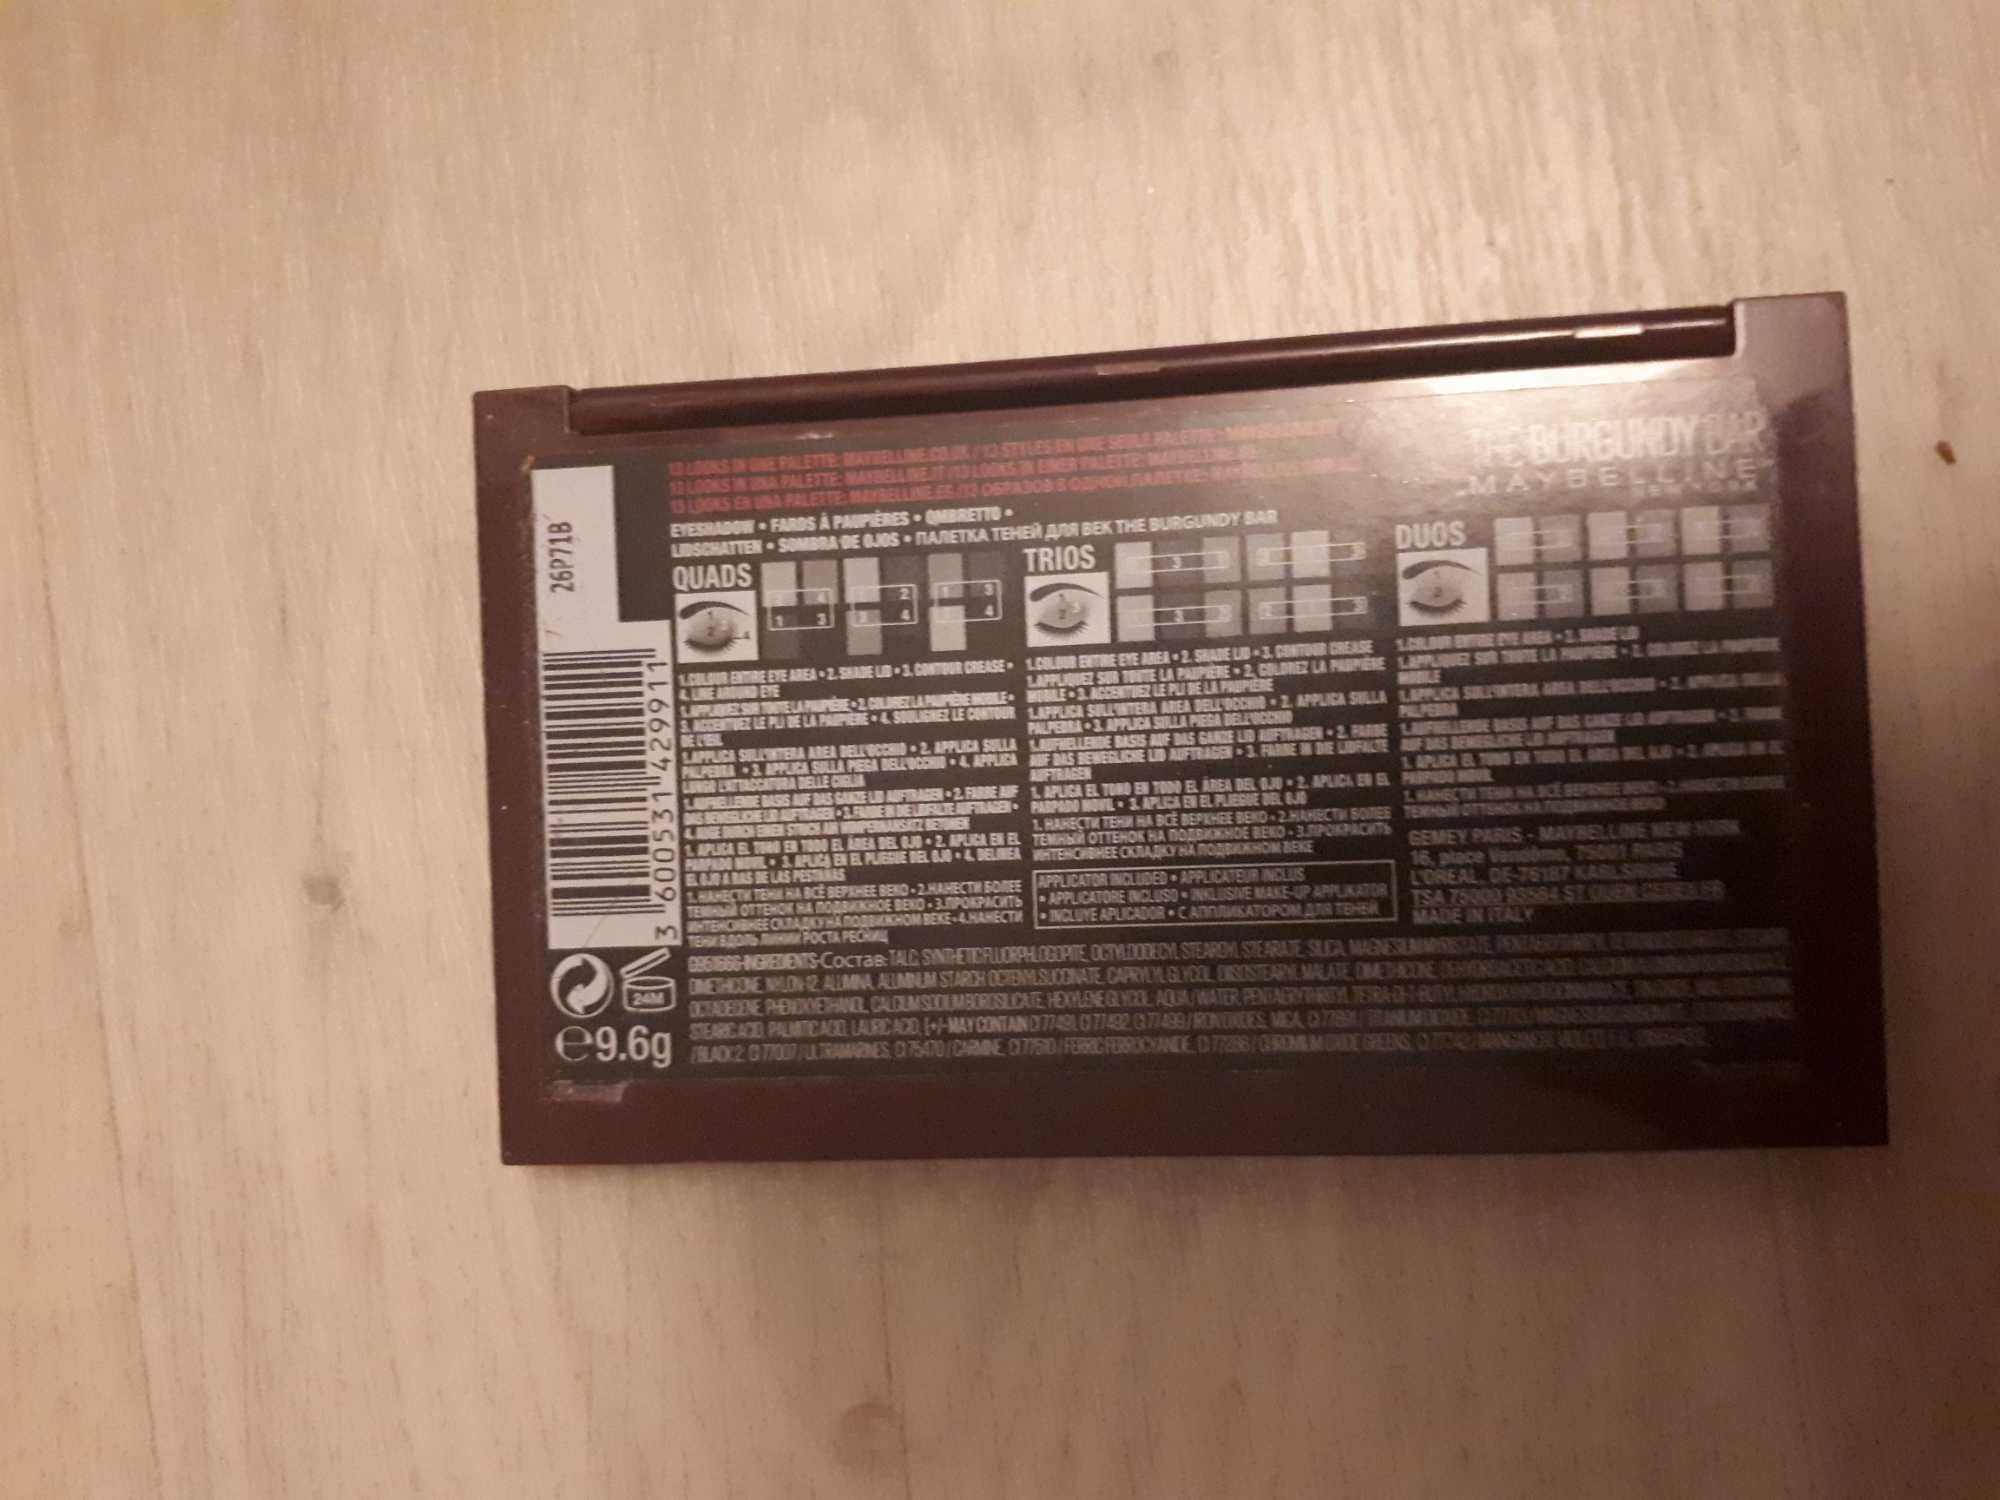 Maybelline Maybelline the Nudes Burgundy Eyeshadow Palette 9.6G - Product